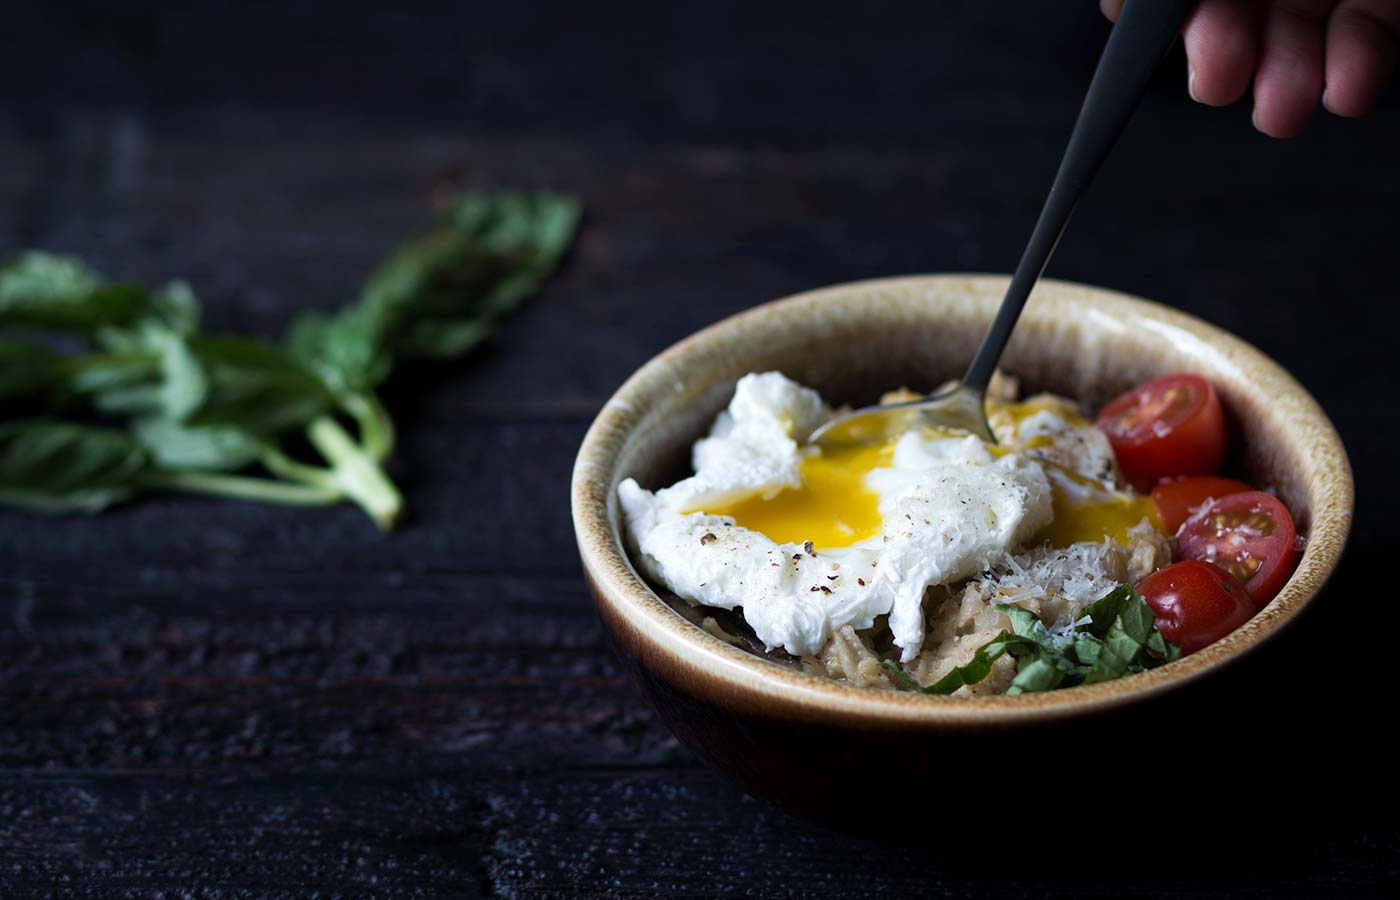 This savory oatmeal with poached eggs, mushrooms and parmesan is a cozy breakfast for two that comes together in no time. Get the recipe from Savory Simple.